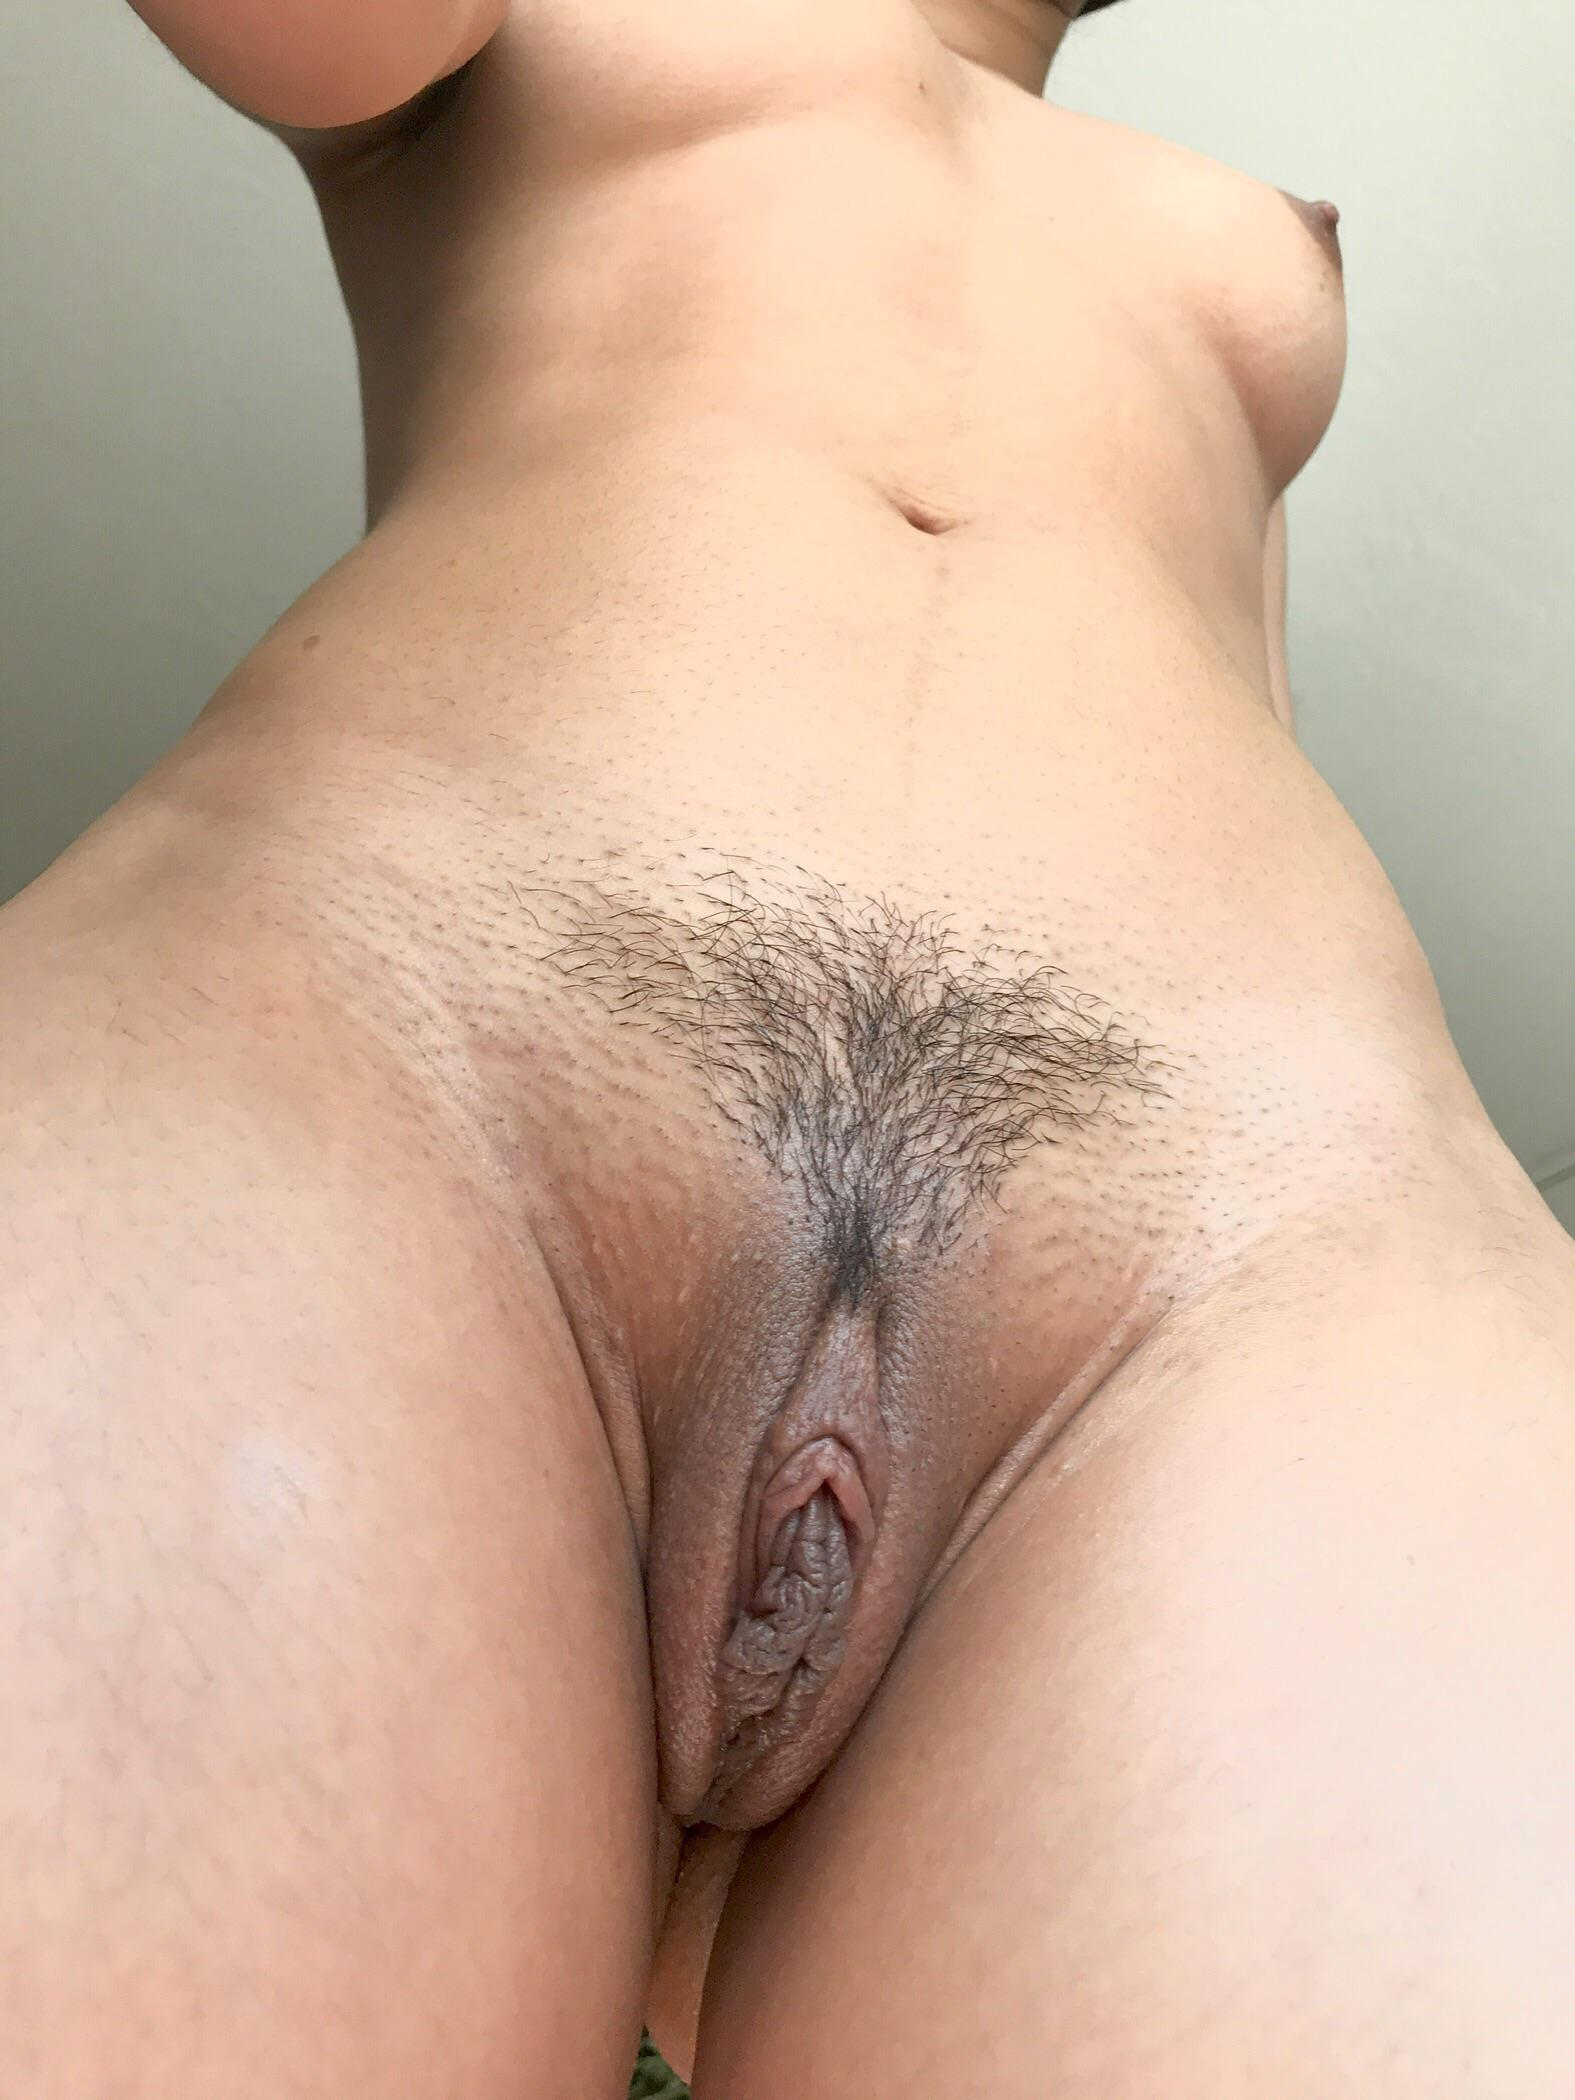 hd matures porn tube amazing mom sex videos for free